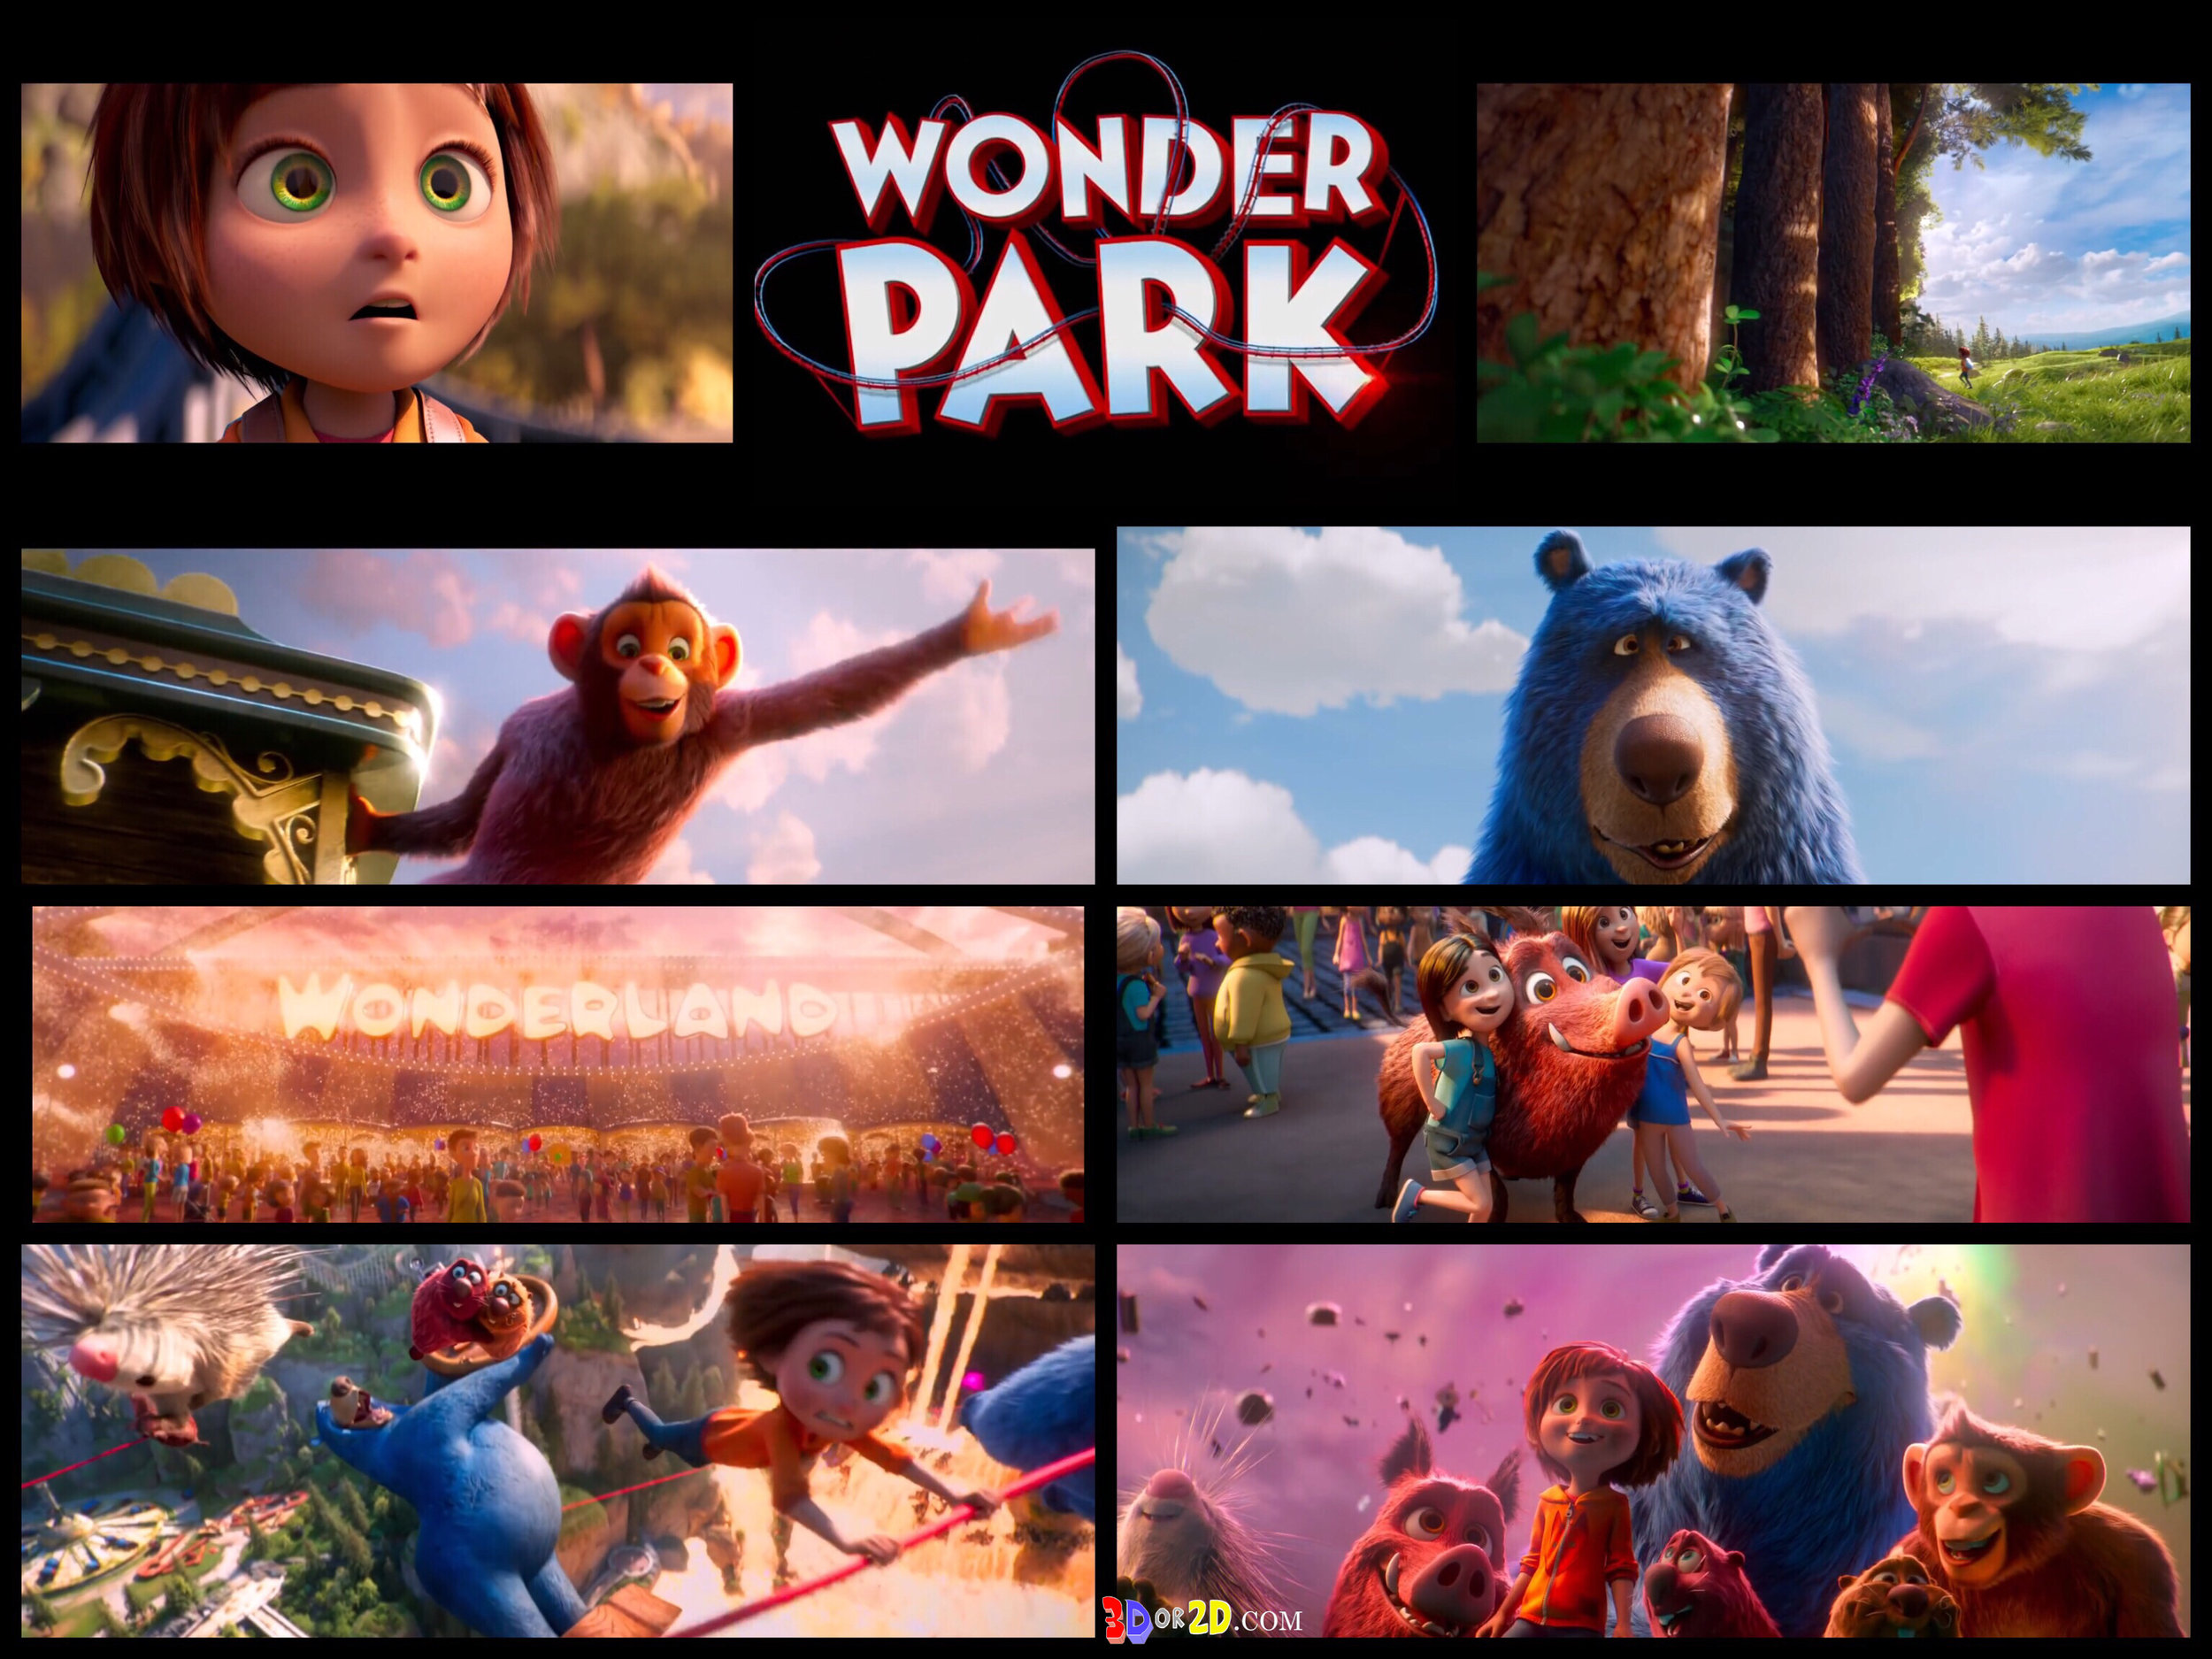 photo collage of scenes from Wonder Park trailer